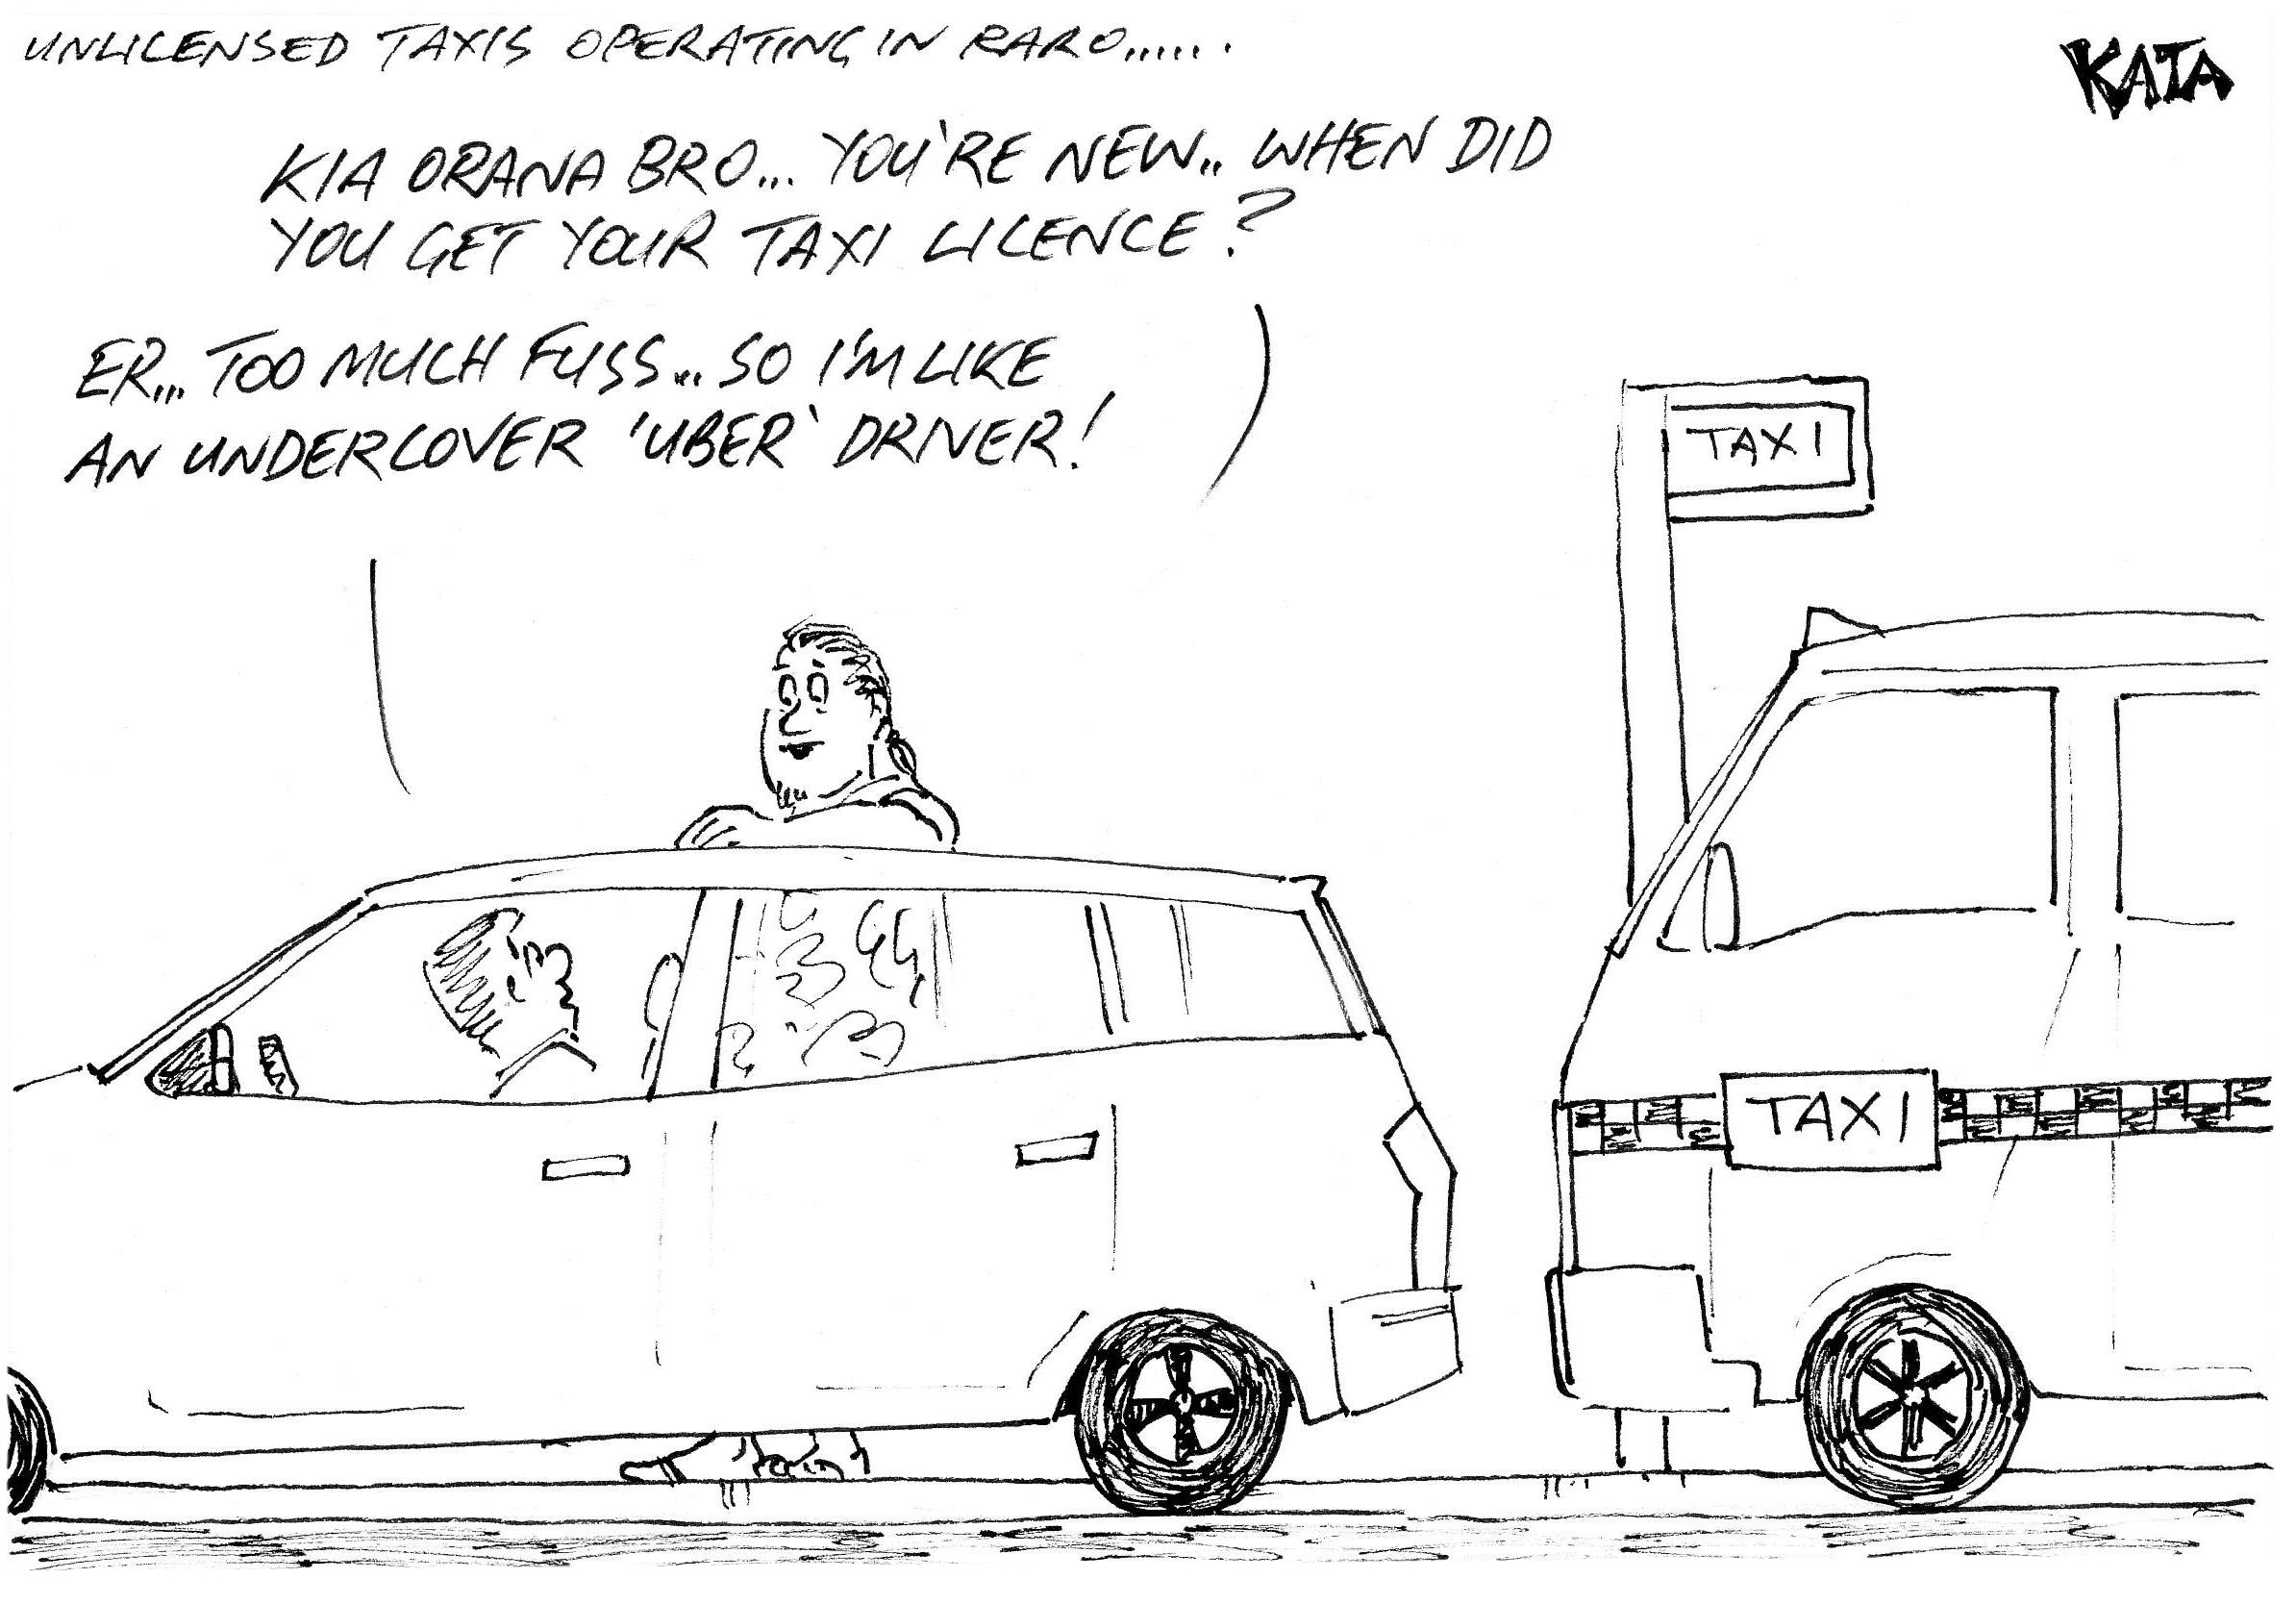 KATA: Unlicensed taxis